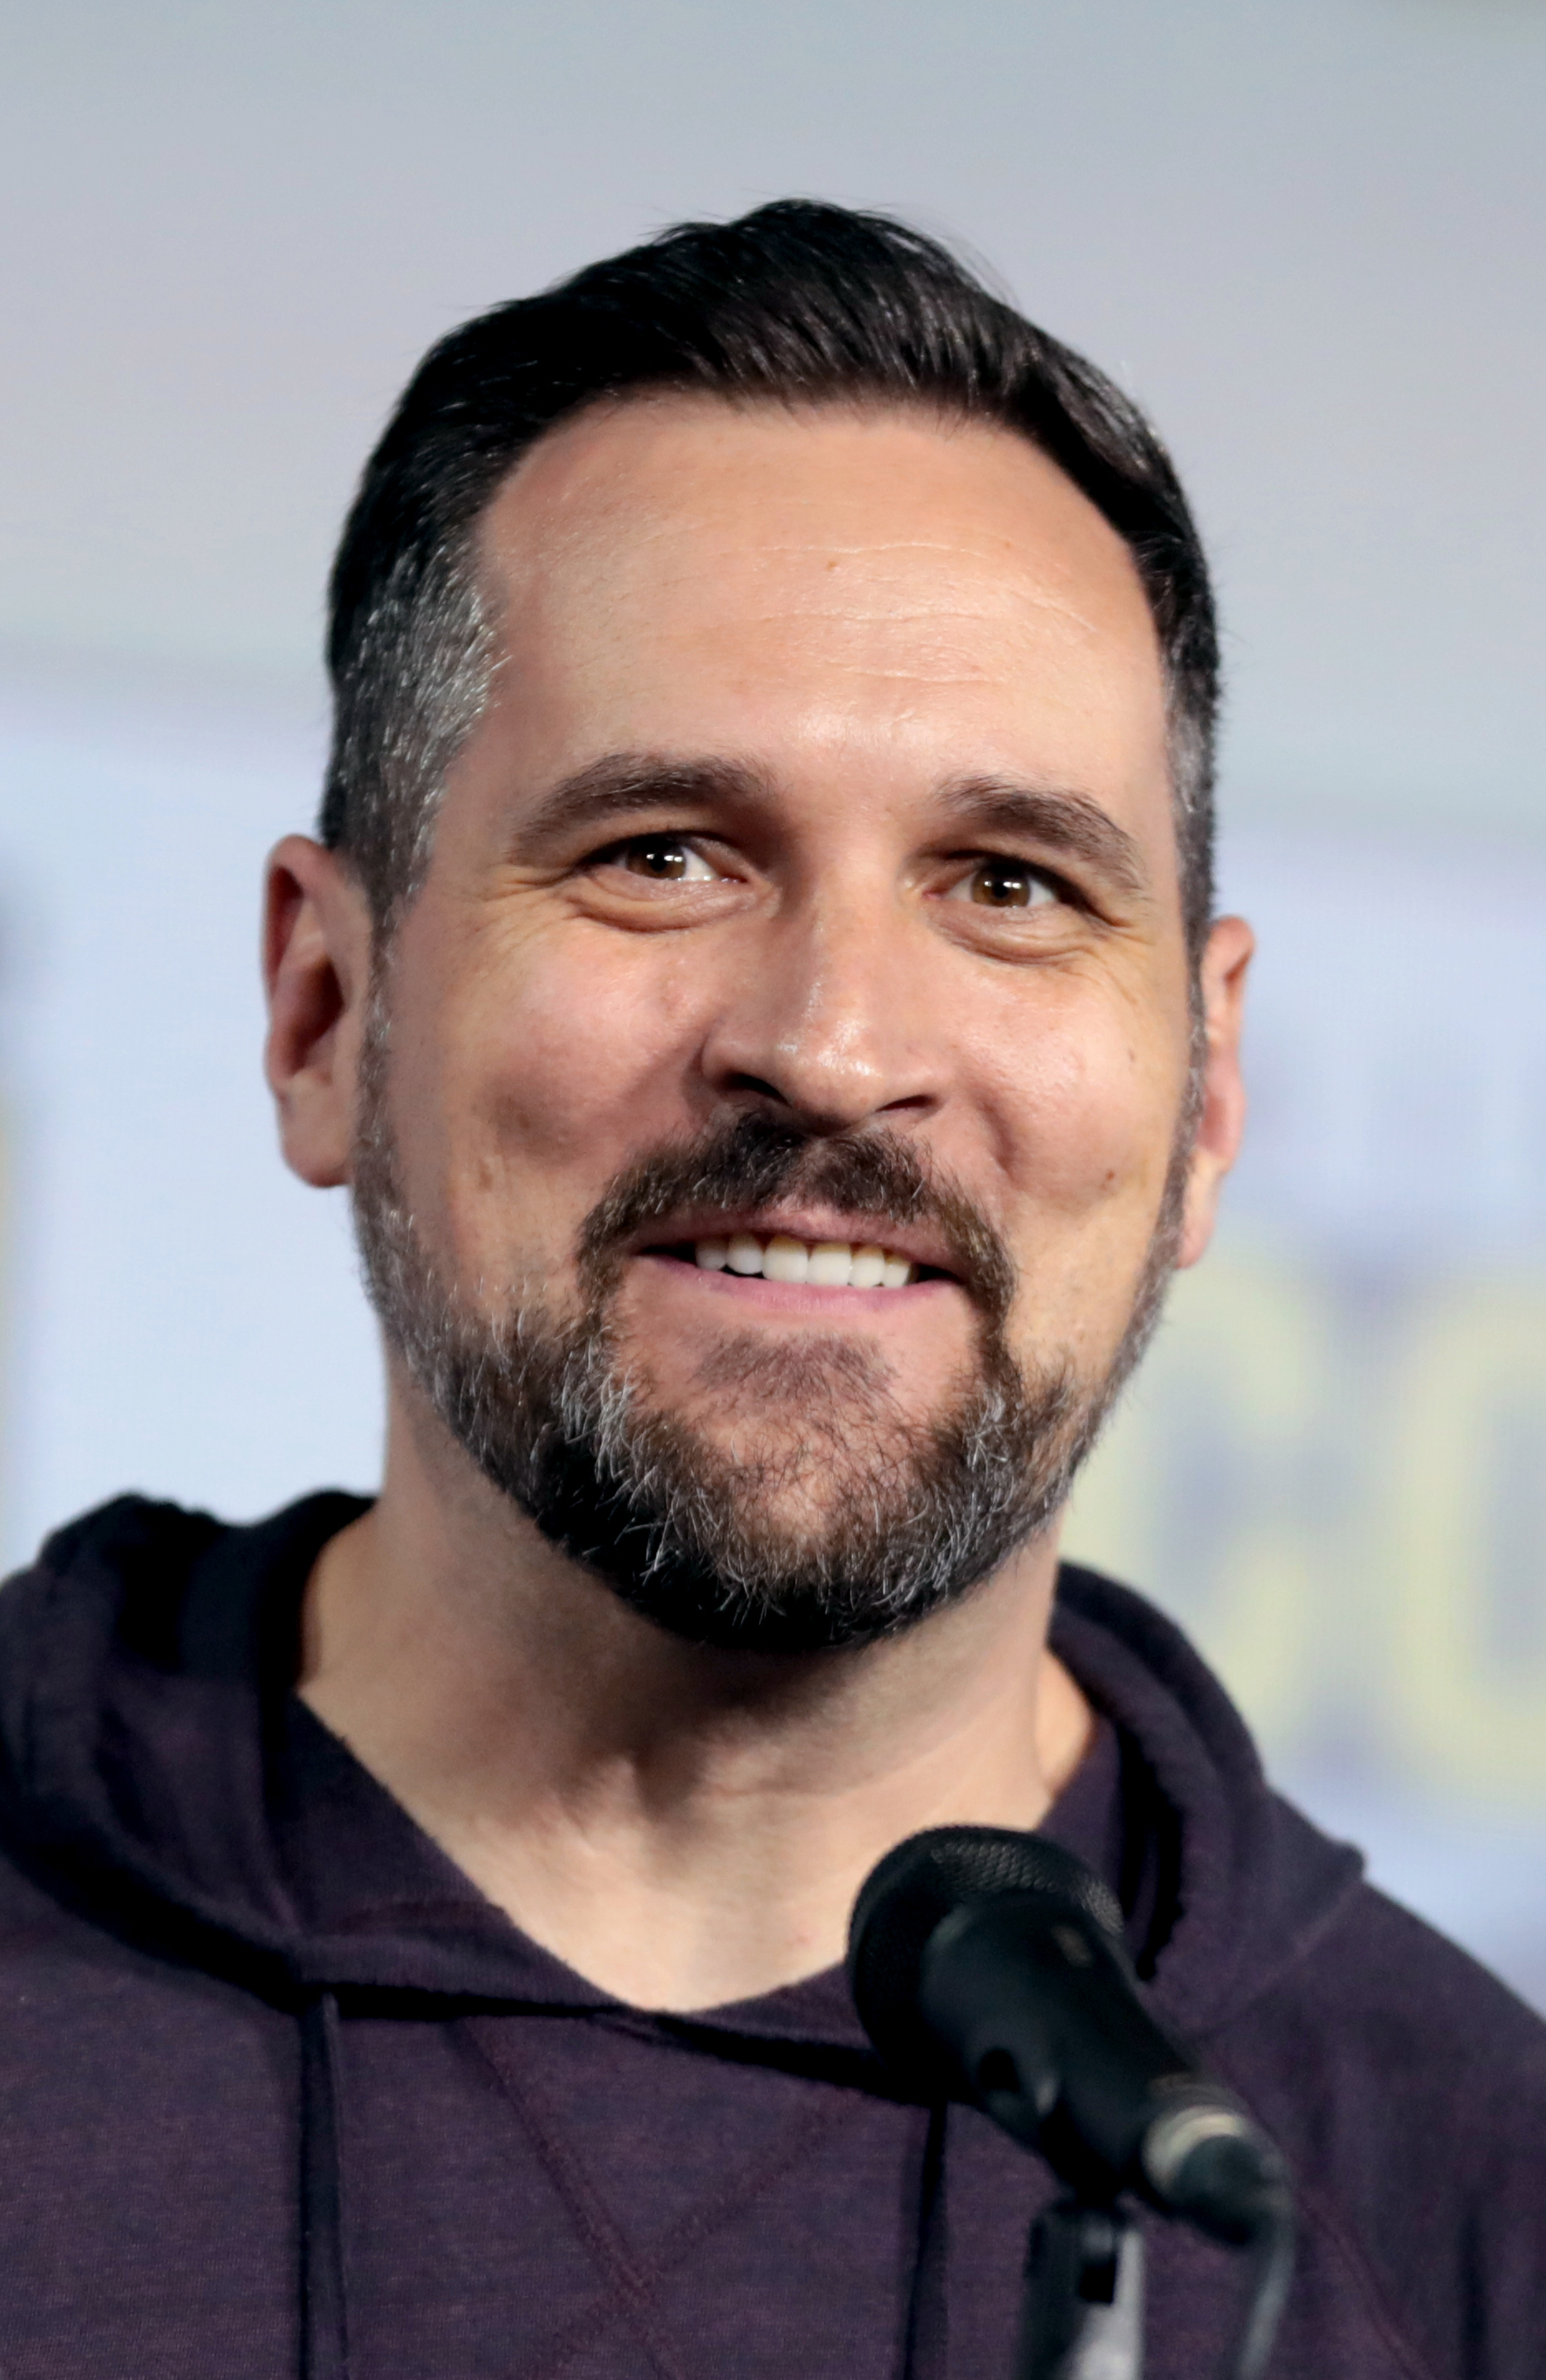 The 39-year old son of father (?) and mother(?) Travis Willingham in 2020 photo. Travis Willingham earned a million dollar salary - leaving the net worth at million in 2020